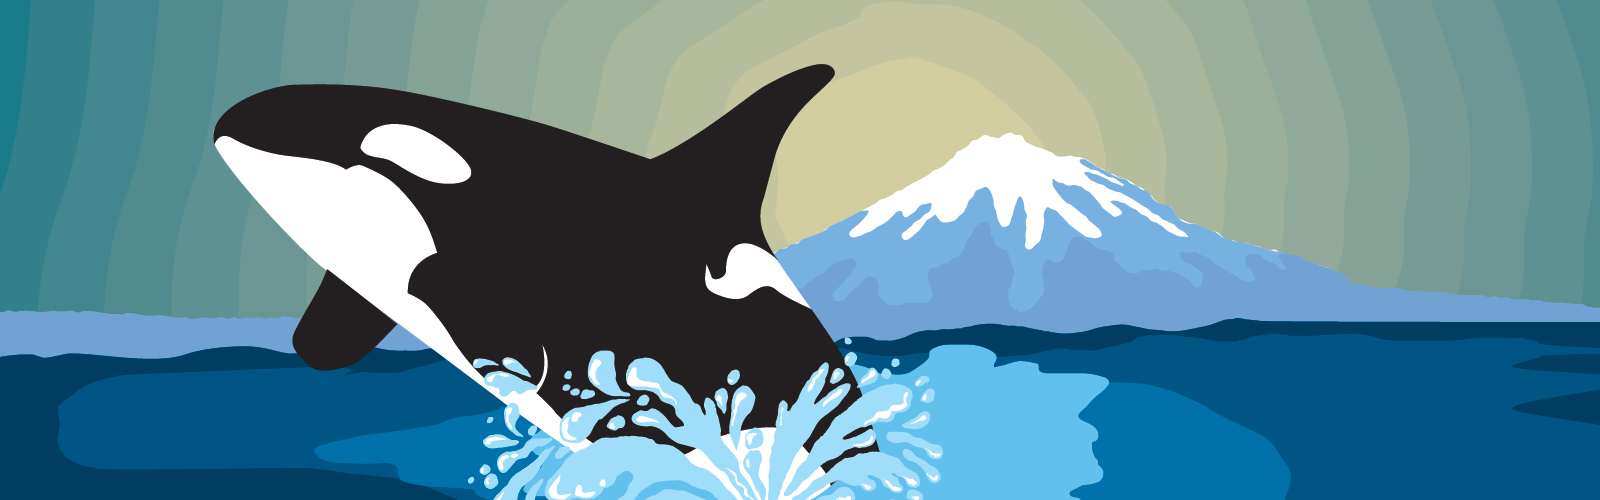 Orca Awareness weekend poster featuring graphic of an orca